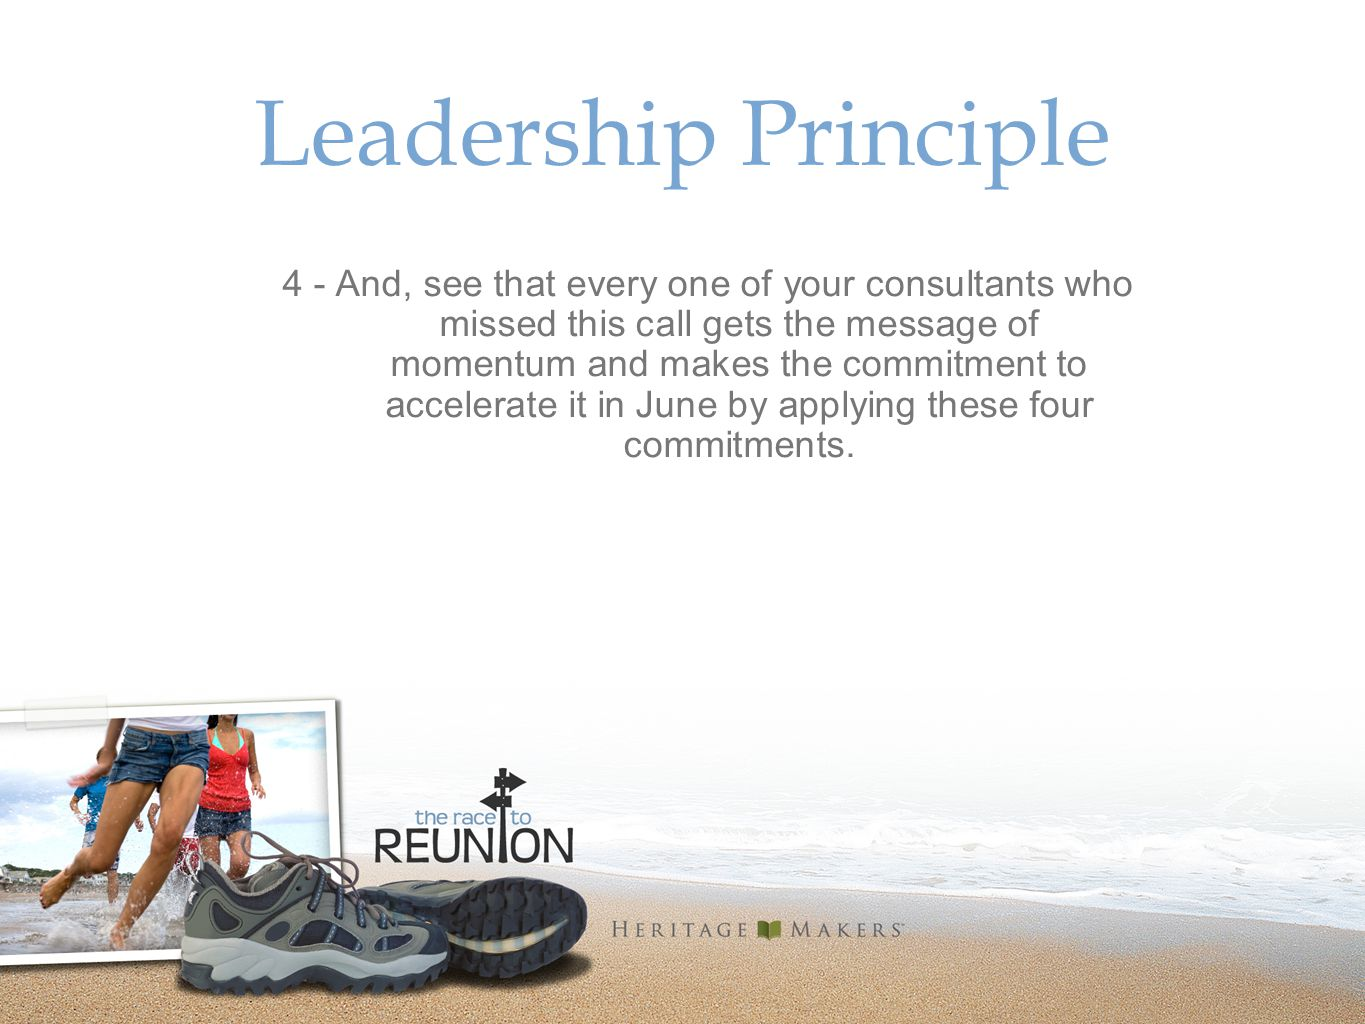 Leadership Principle 4 - And, see that every one of your consultants who missed this call gets the message of momentum and makes the commitment to accelerate it in June by applying these four commitments.